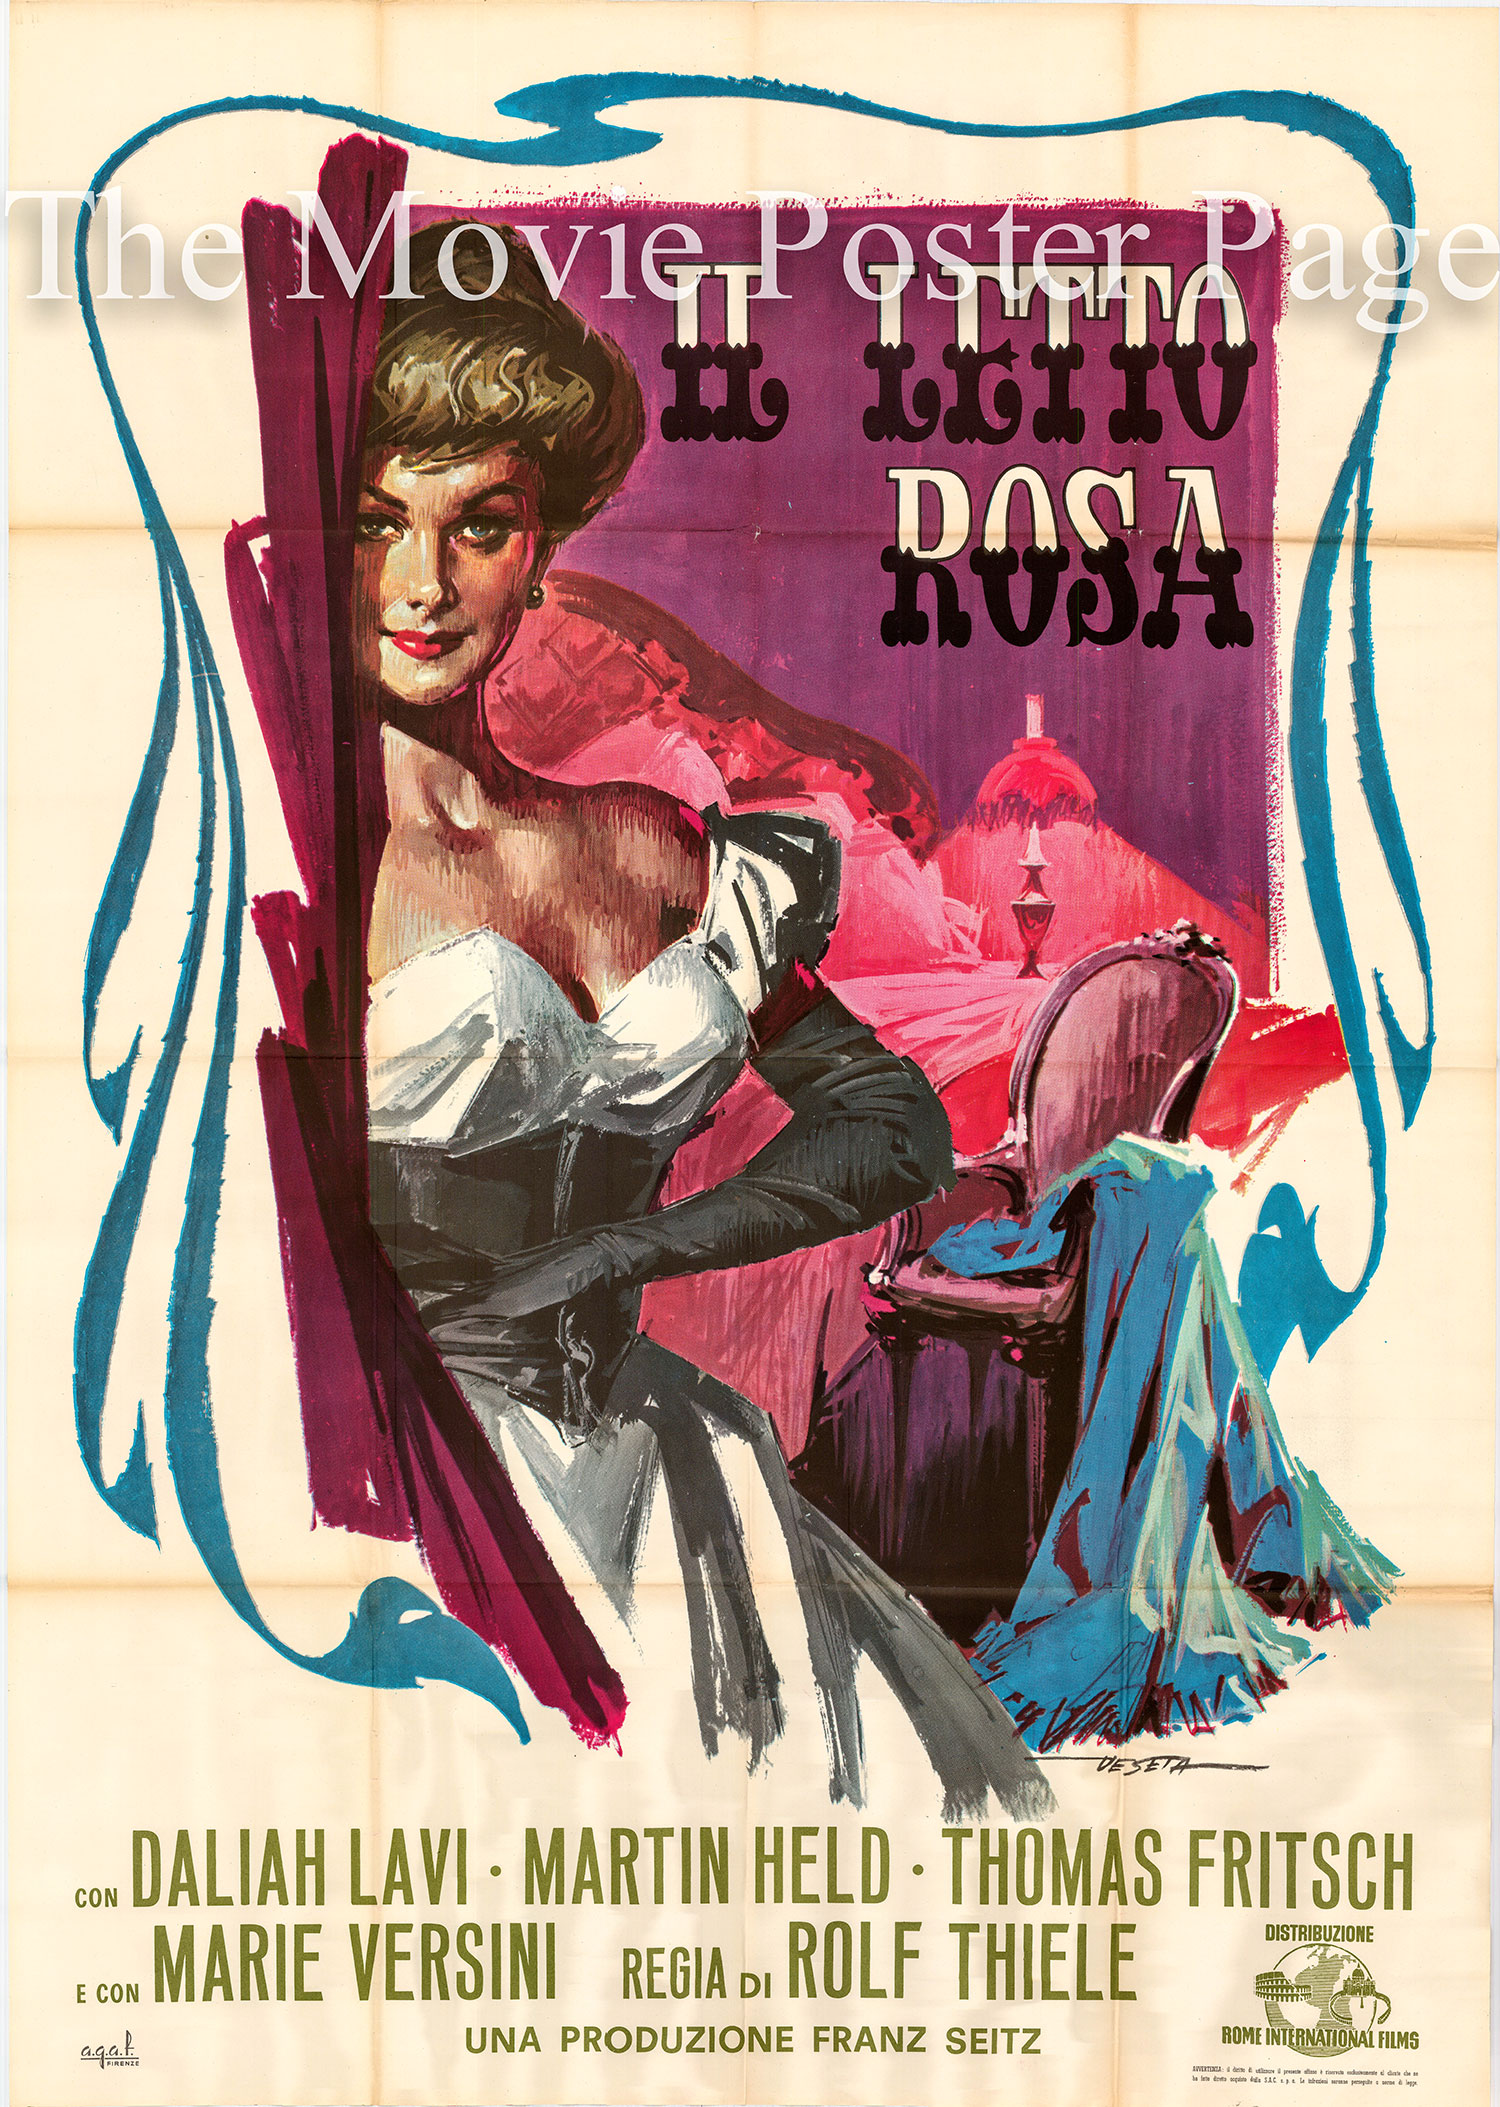 Pictured is an Italian two-sheet poster using art by Enrico De Seta to promote the 1962 Rolf Thiele film Black-White-Red Four Poster starring Daliah Lavi and Thomas Fritsch.